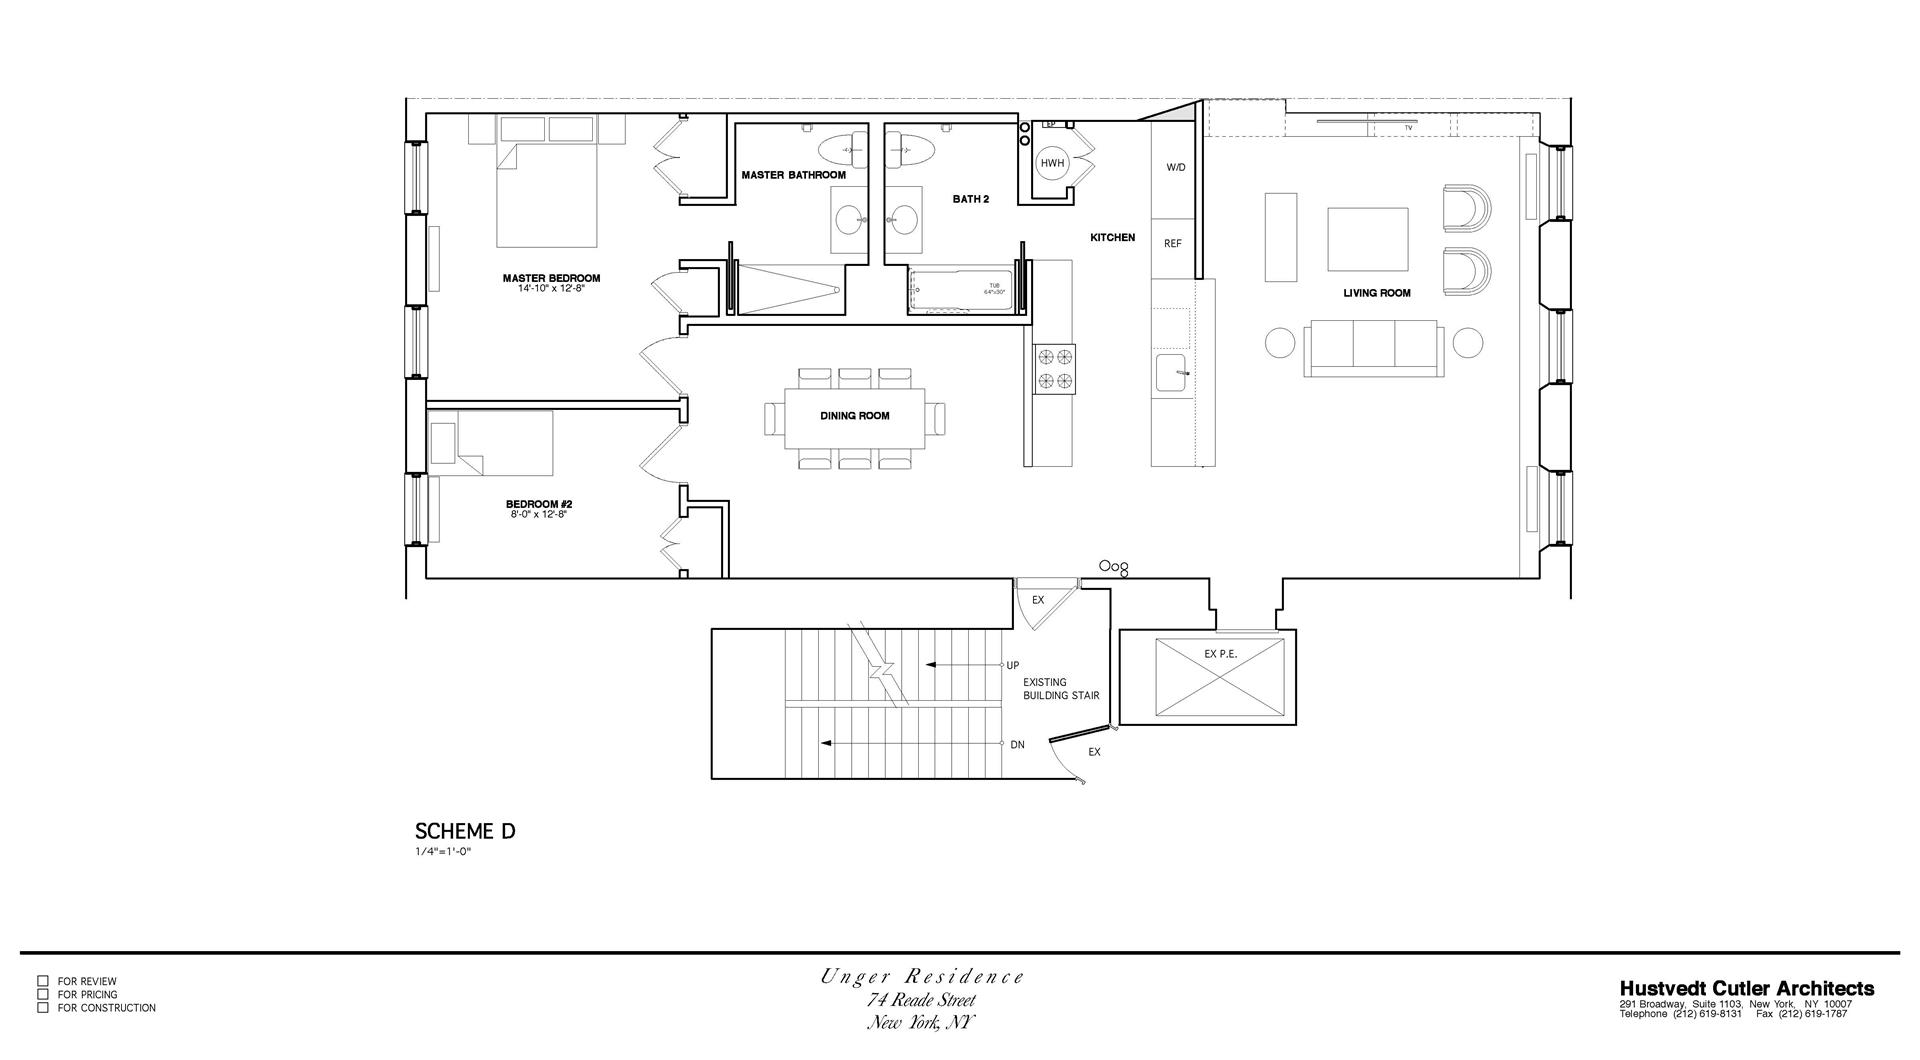 Floor plan of 74 Reade St, 4E - TriBeCa, New York